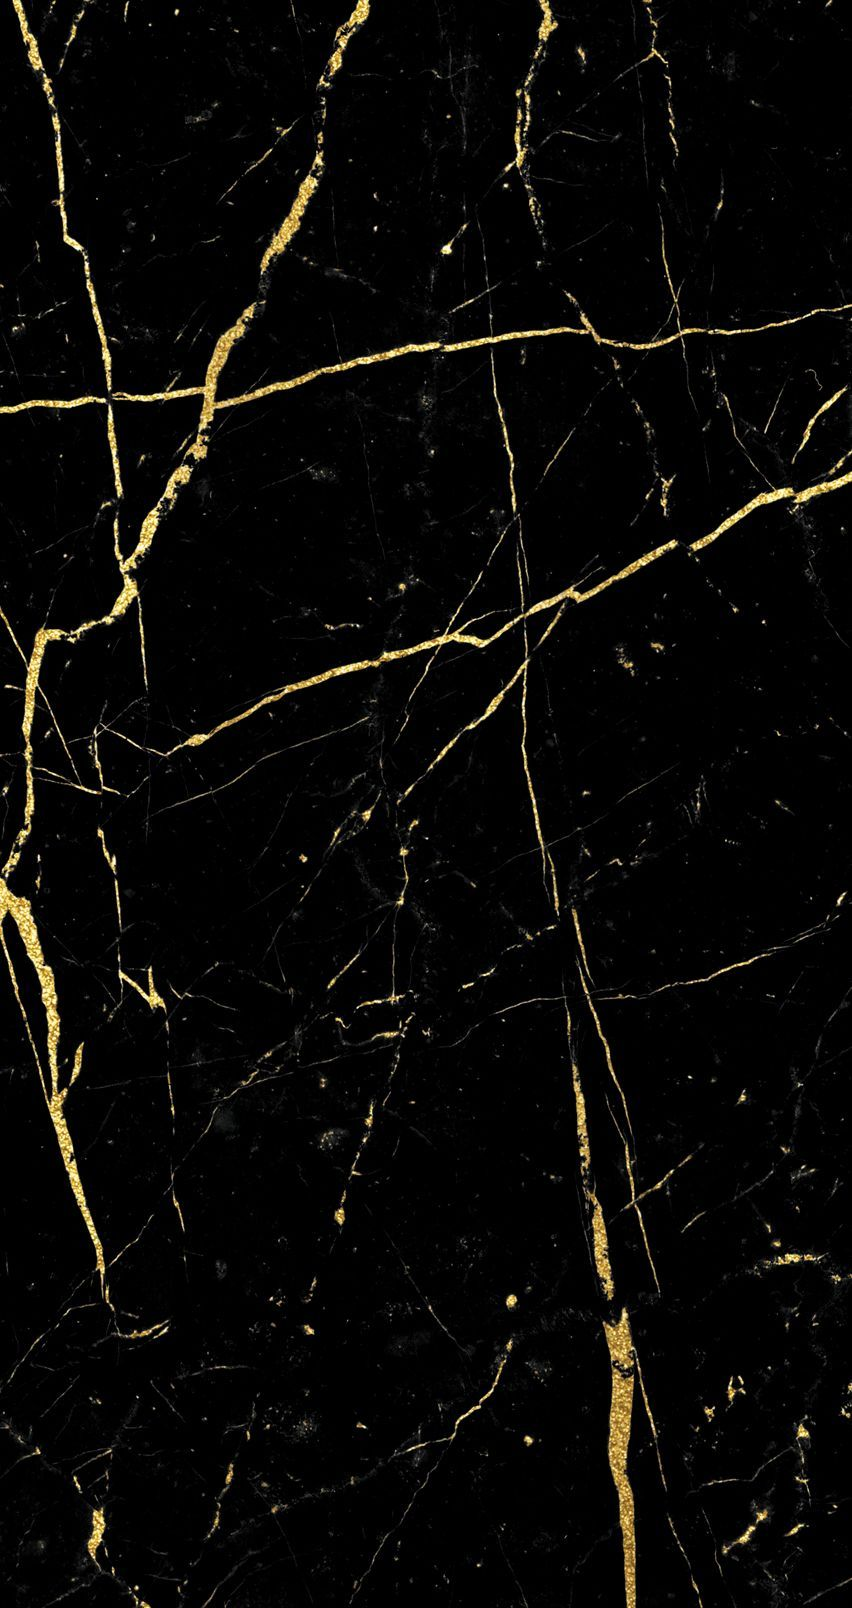 Pin By Marble Countertops Cararra On Backgrounds Marble Wallpaper Hd Black And Gold Marble Marble Iphone Wallpaper